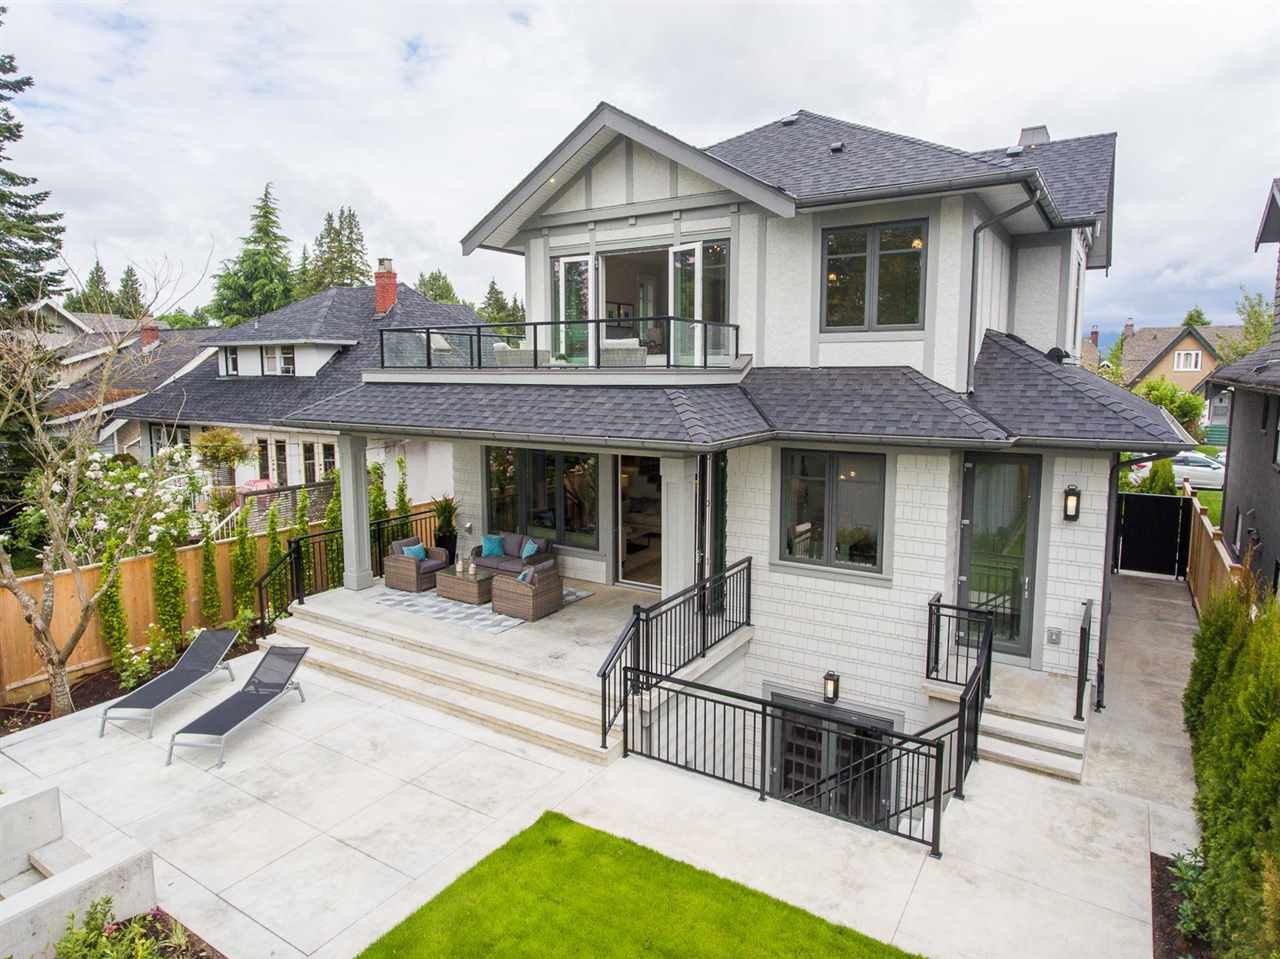 """Photo 2: Photos: 2816 W 30TH Avenue in Vancouver: MacKenzie Heights House for sale in """"MACKENZIE HEIGHTS"""" (Vancouver West)  : MLS®# R2456722"""